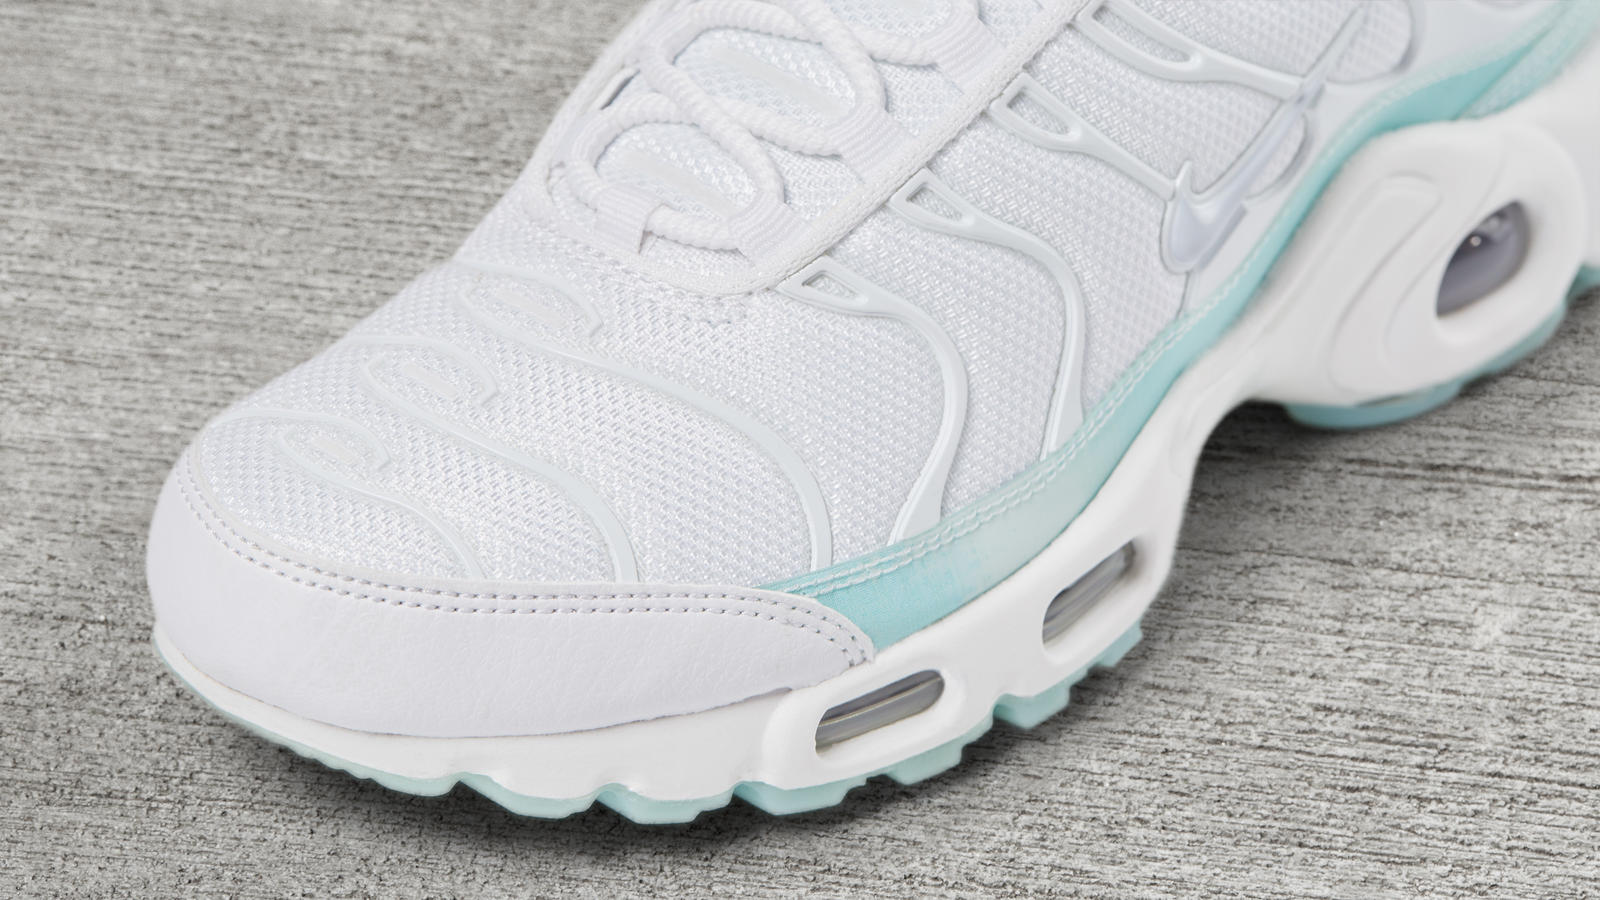 Air max plus holographic white 3 hd 1600